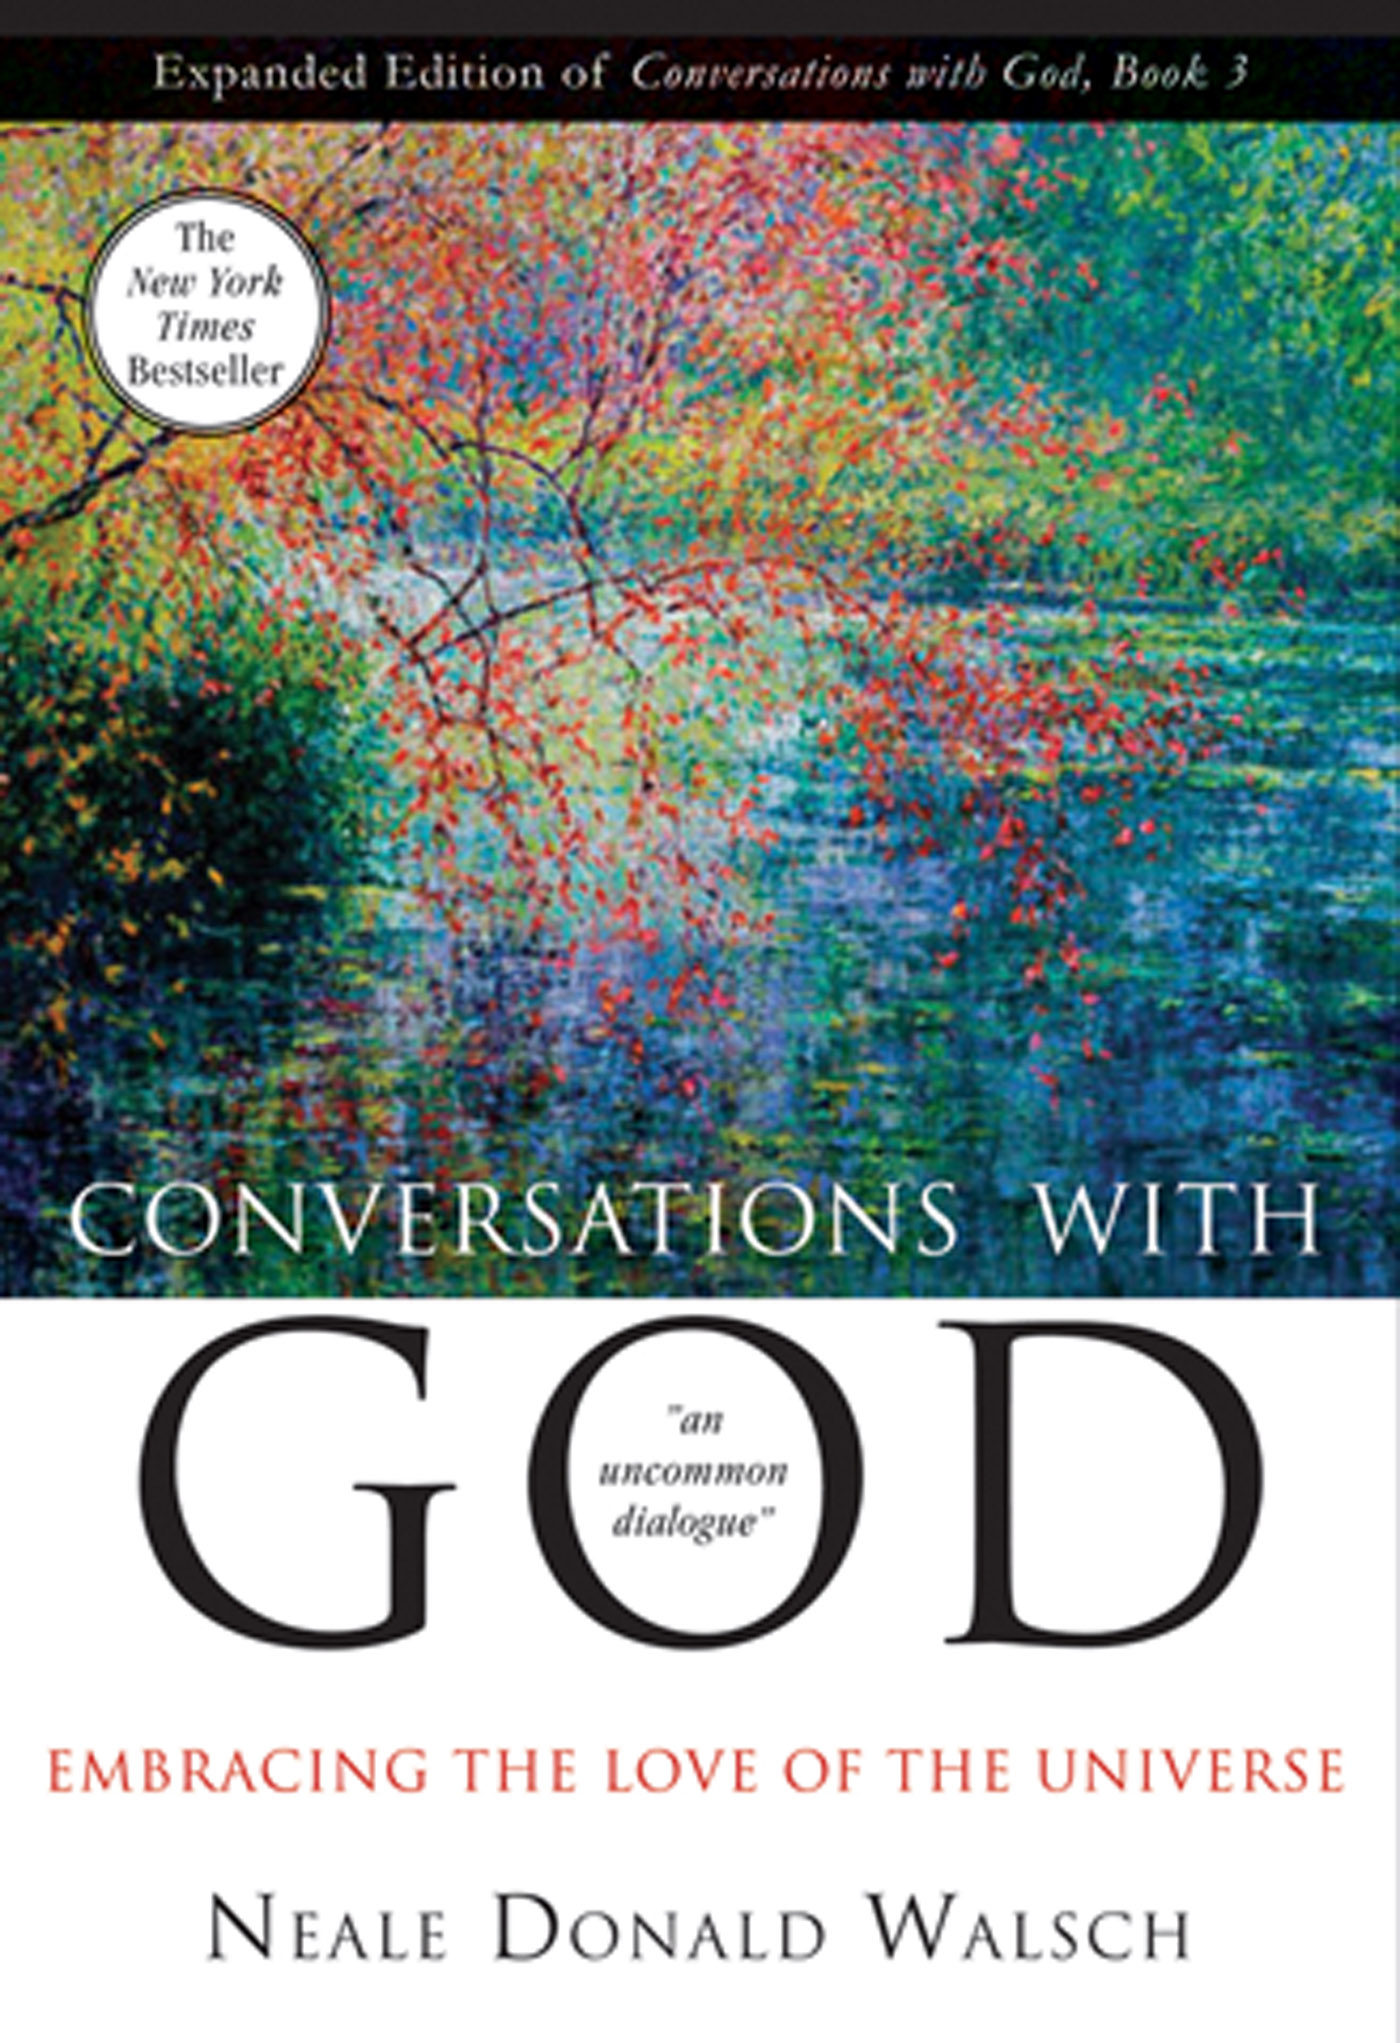 Conversations With God, Book 3 (ebook)neale Donald Walsch9781612832166